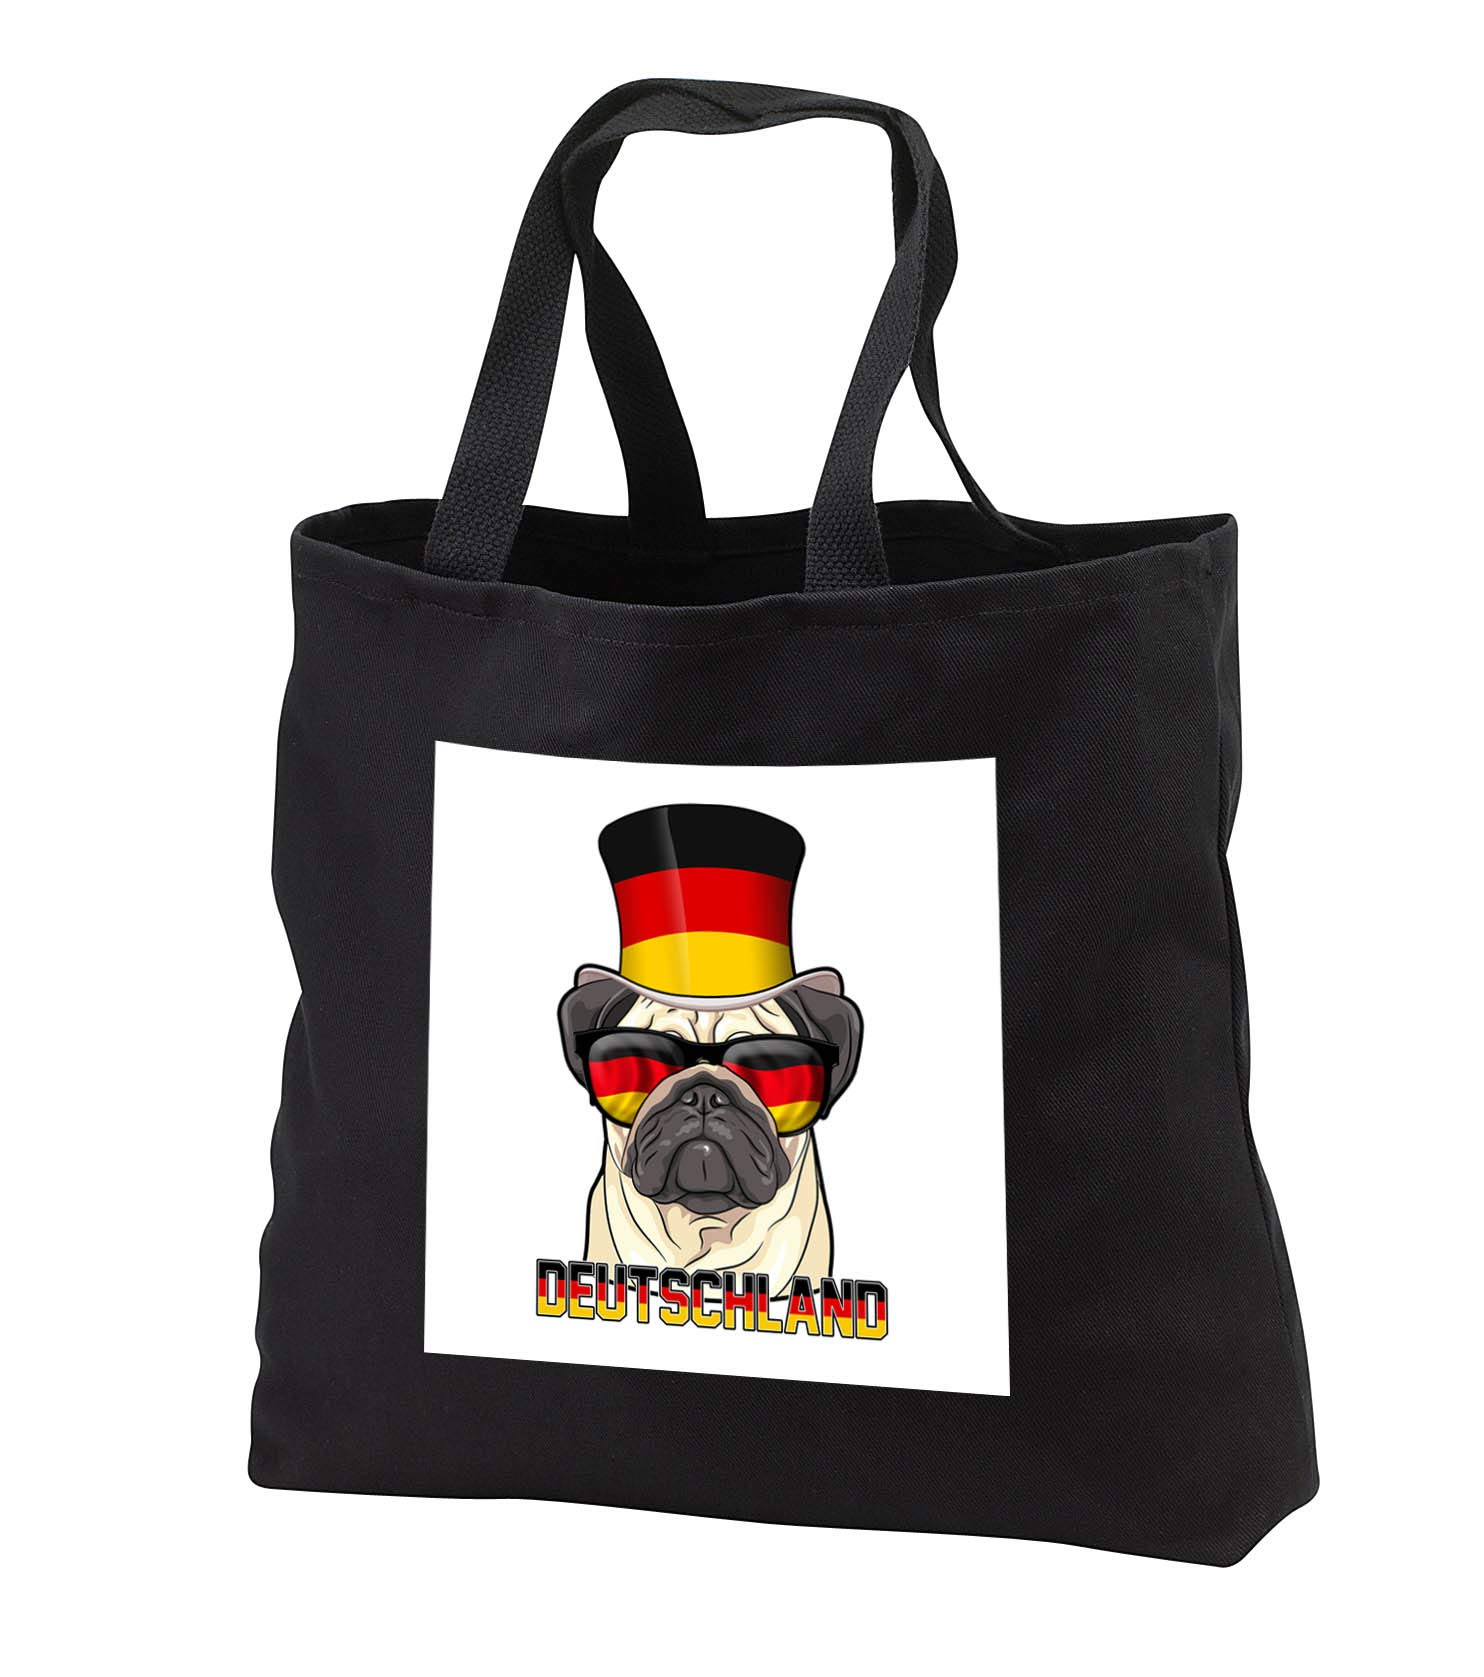 Carsten Reisinger - Illustrations - Germany Pug Dog with German Flag Top Hat and Sunglasses - Tote Bags - Black Tote Bag 14w x 14h x 3d (tb_293429_1)